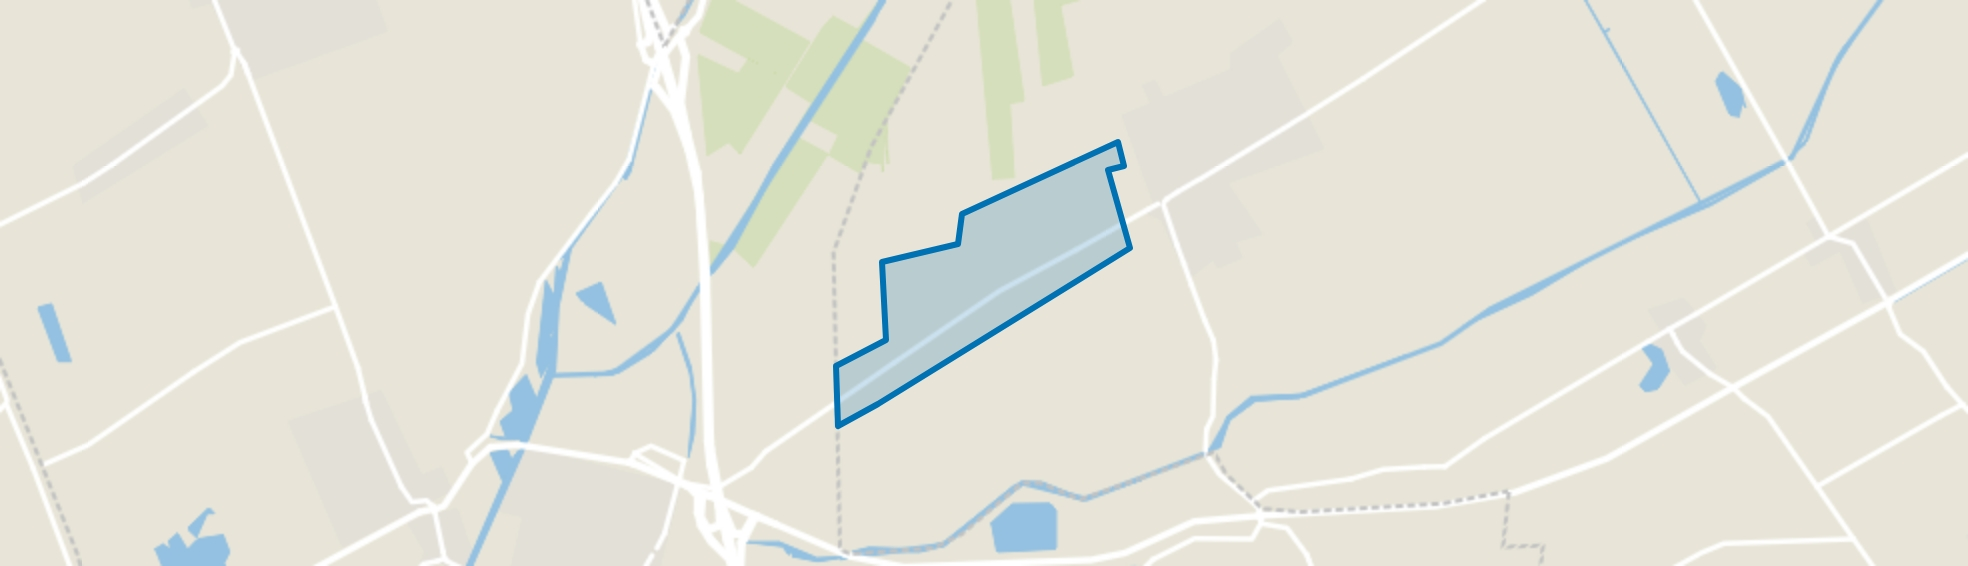 Haakswold, Ruinerwold map